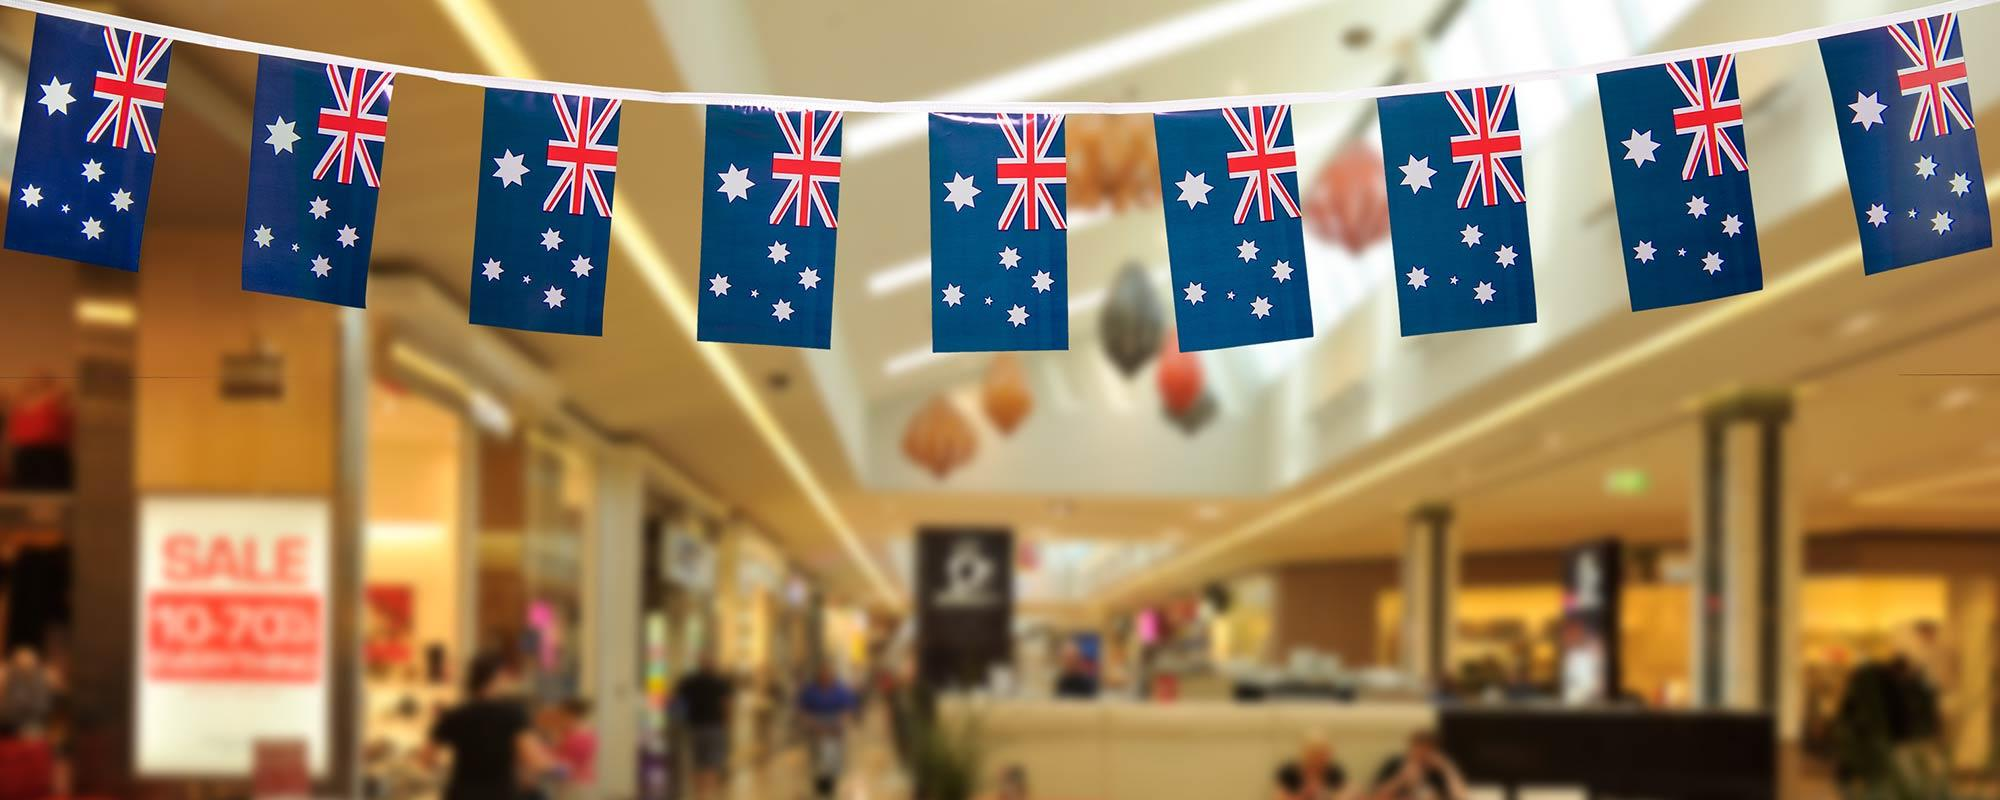 Australian Bunting Flags Buy Bunting Online For Aus Amp Nz